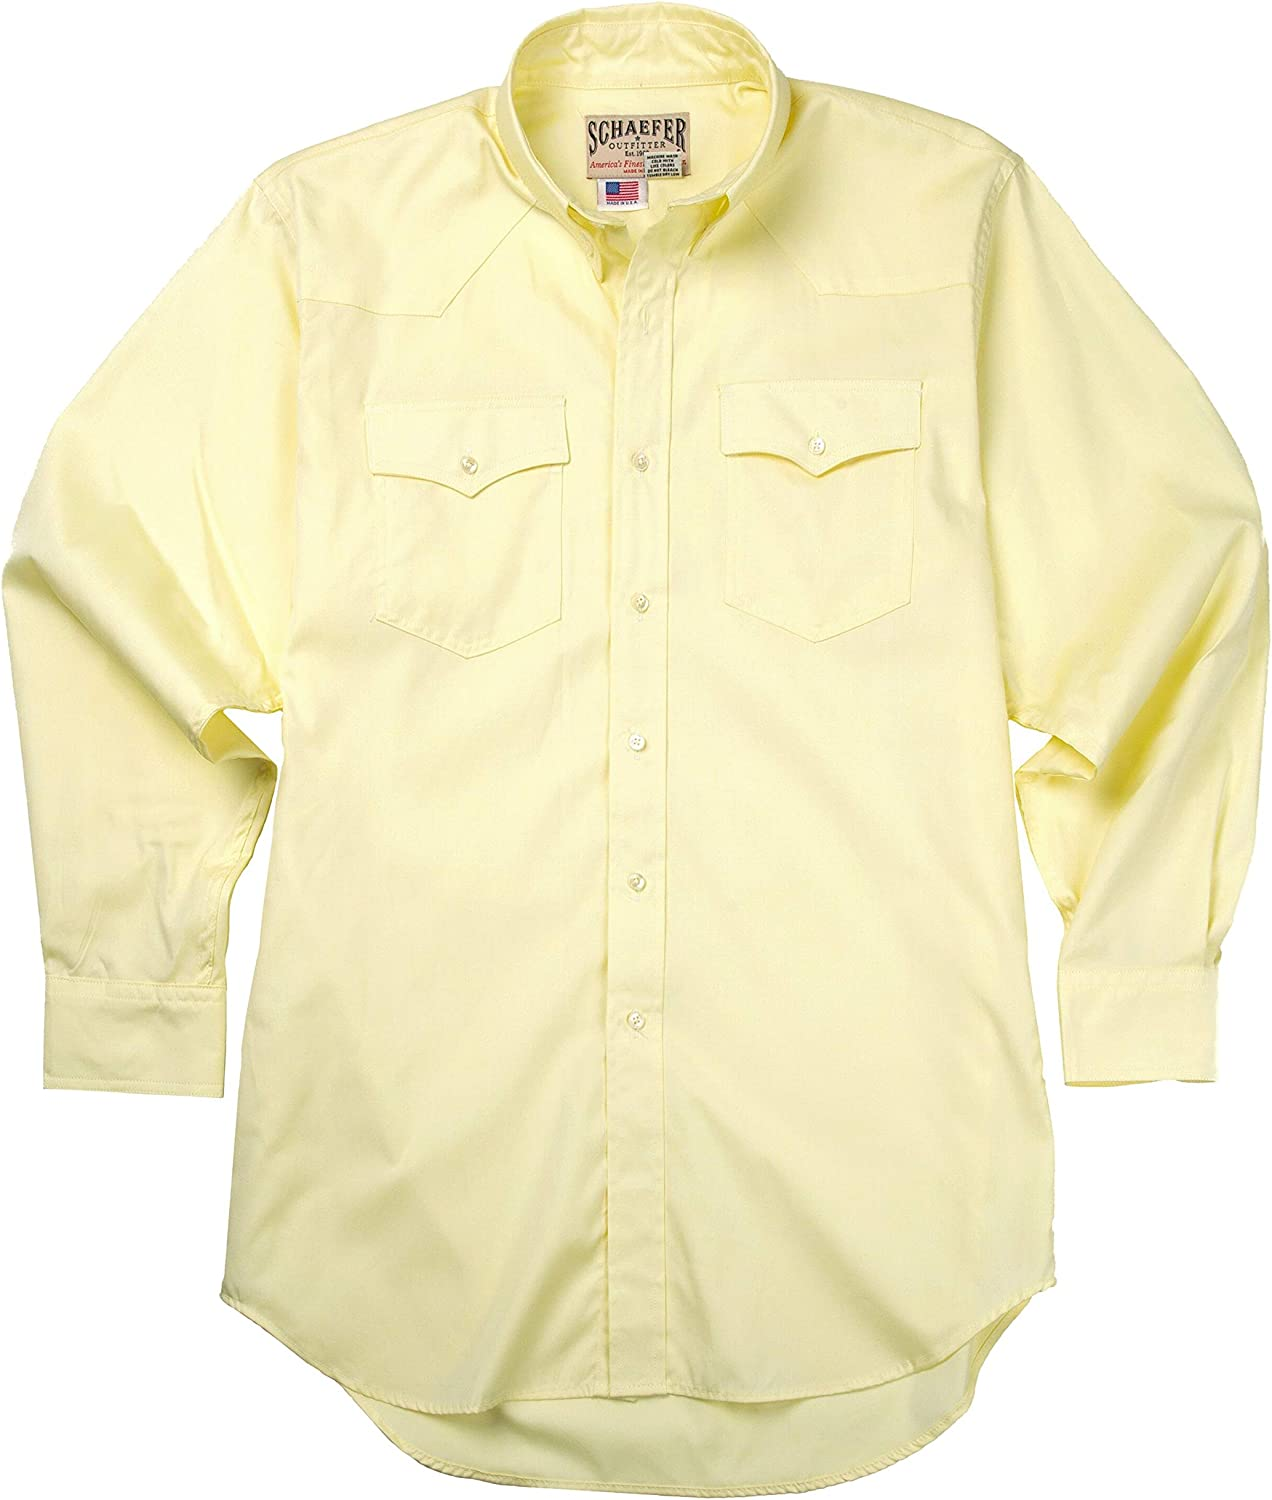 Western Classic B/D Pinpoint Western Shirt